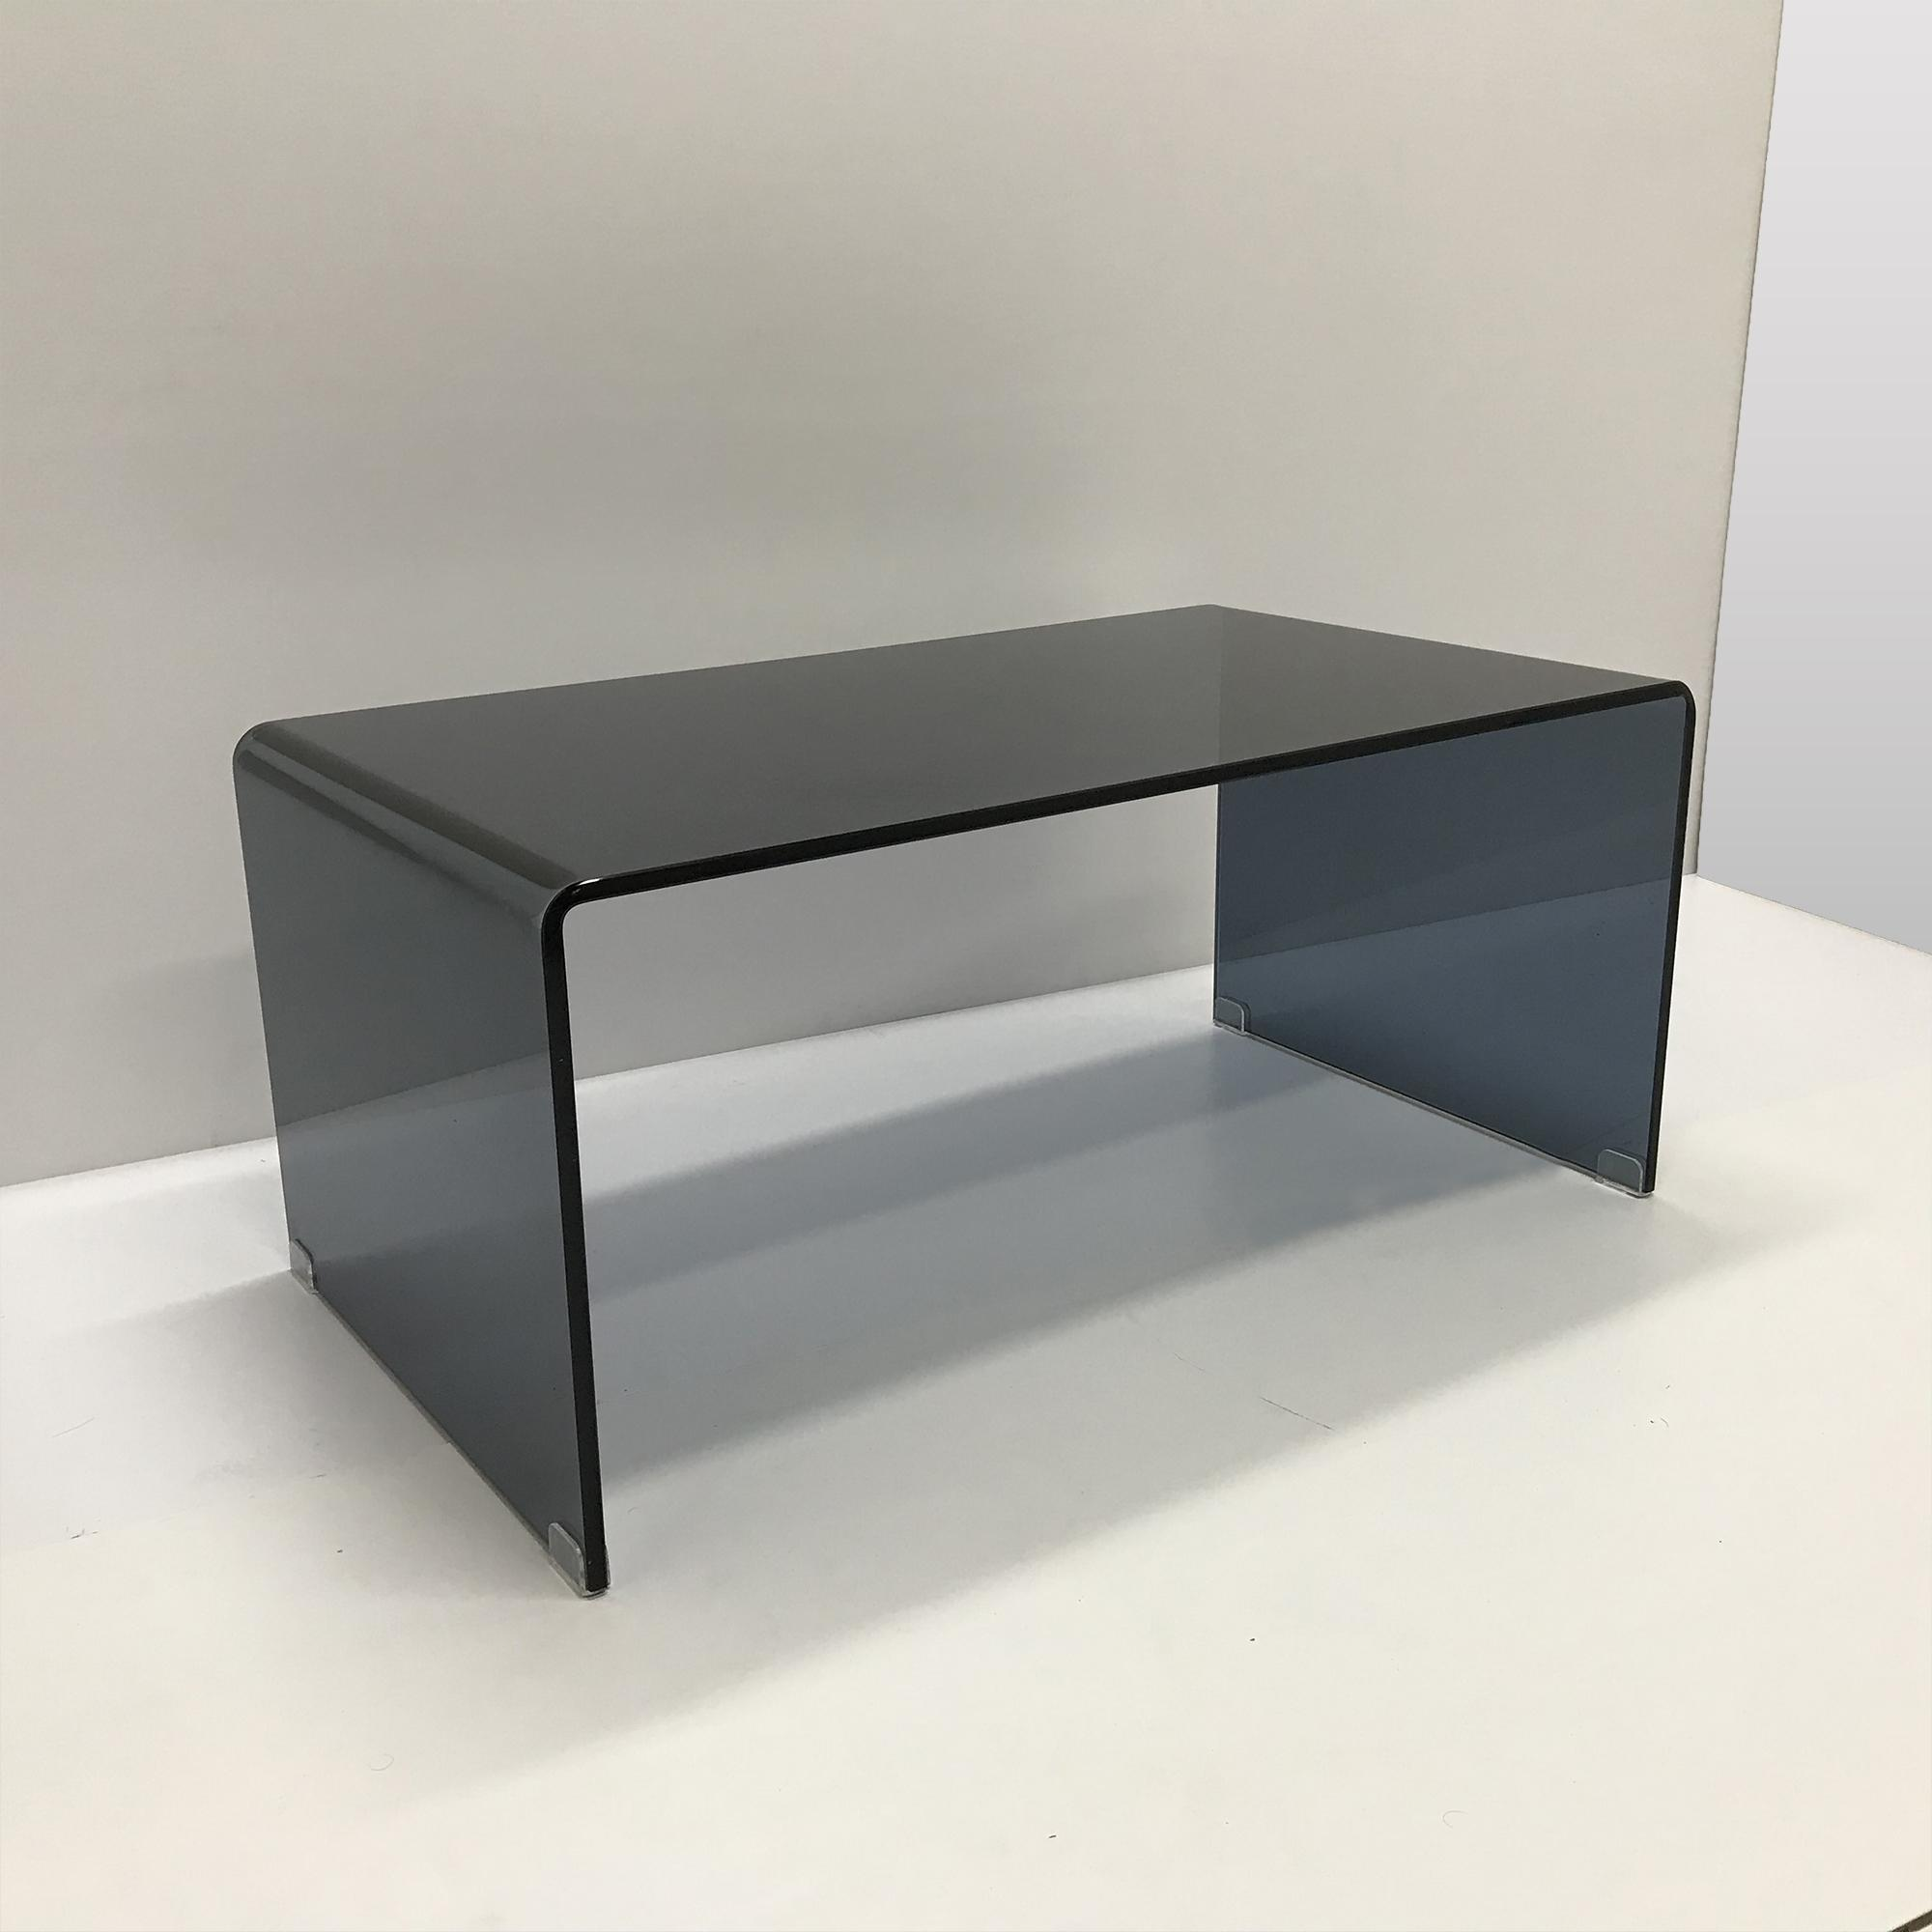 Minimalist Black Tinted Coffee Table